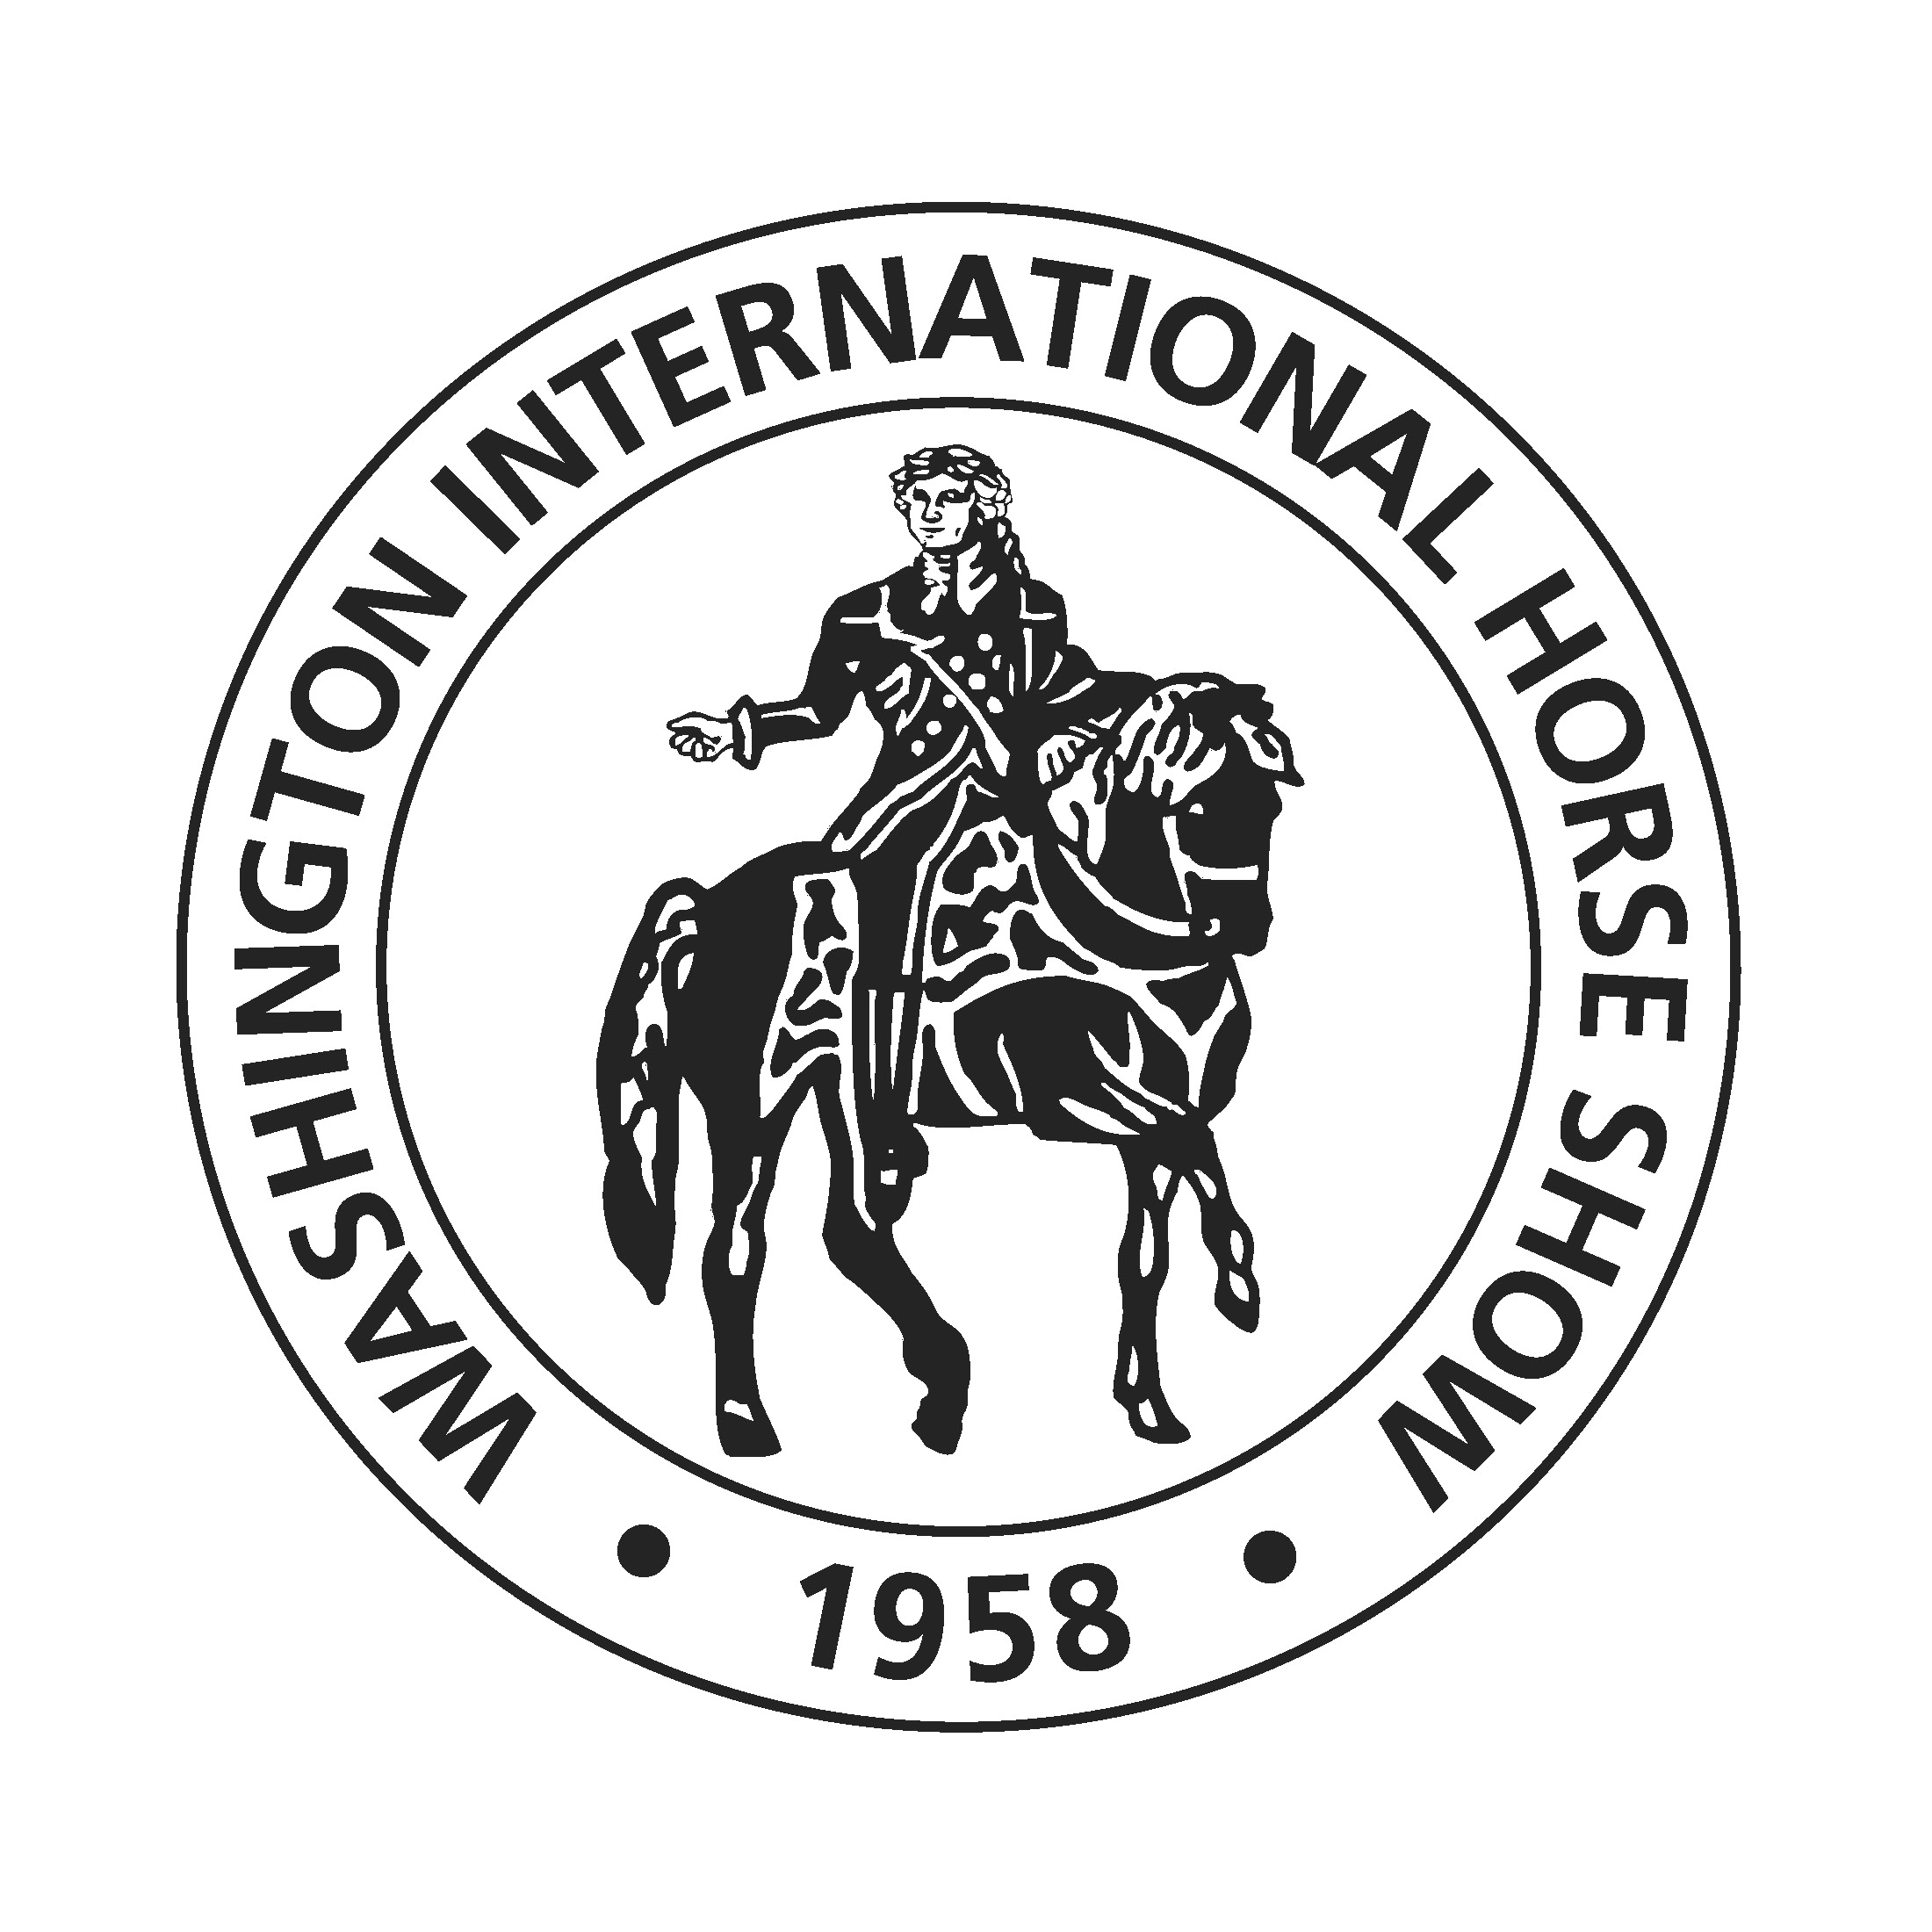 WIHS logo of George Washington on a Horse